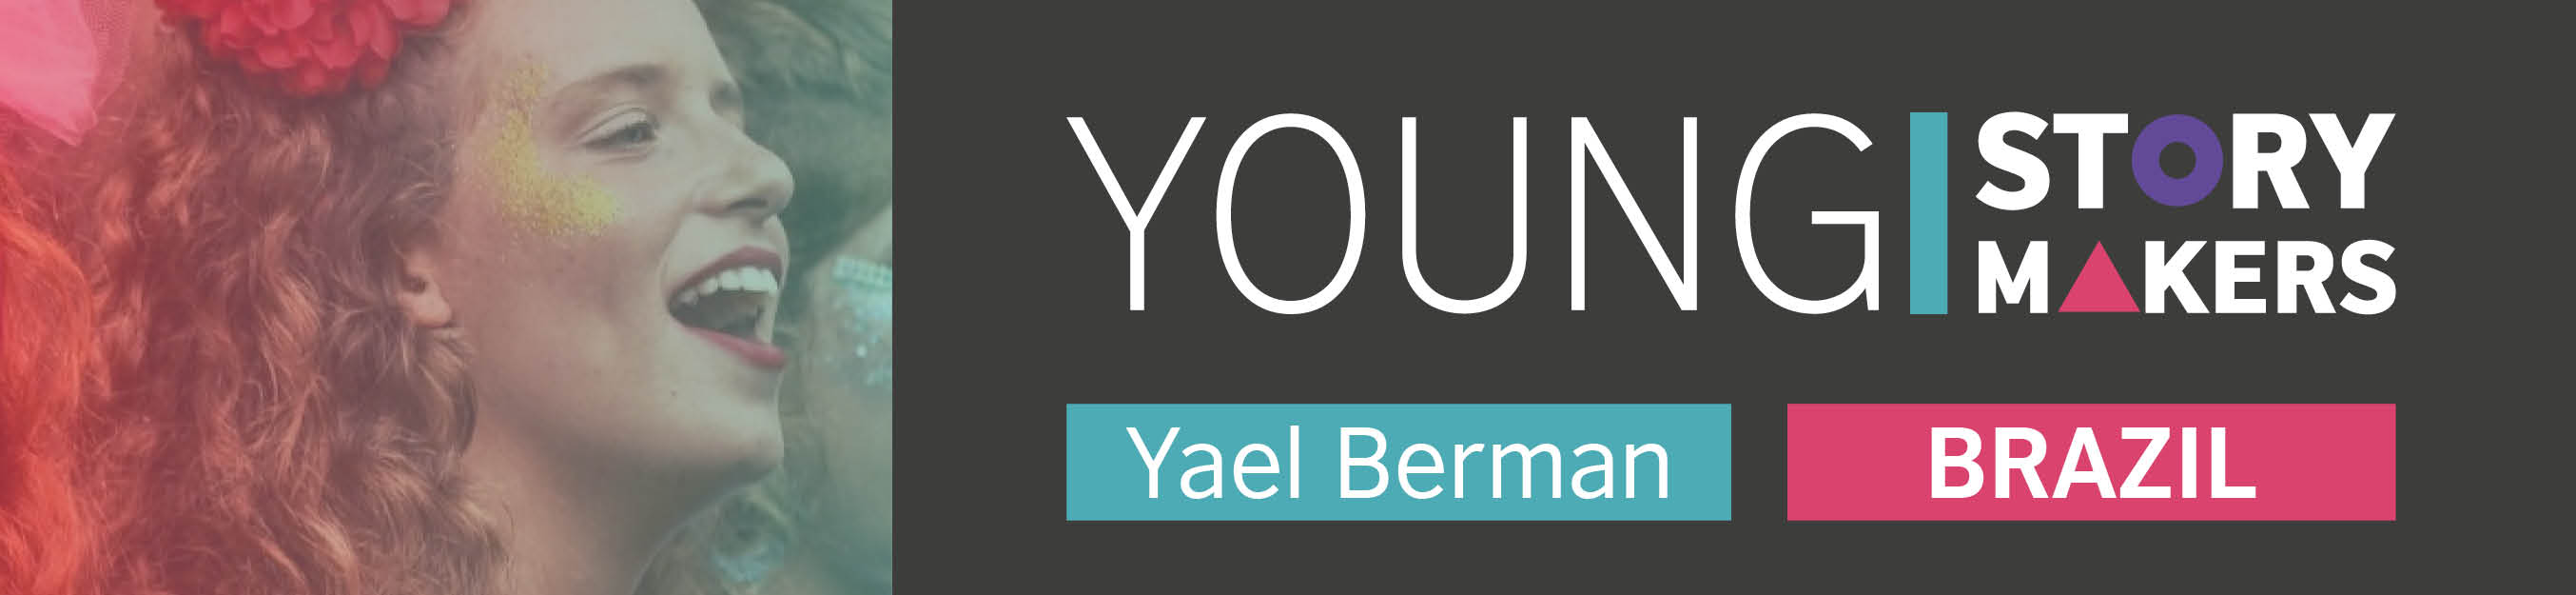 DICE Young Storymaker Yael Berman